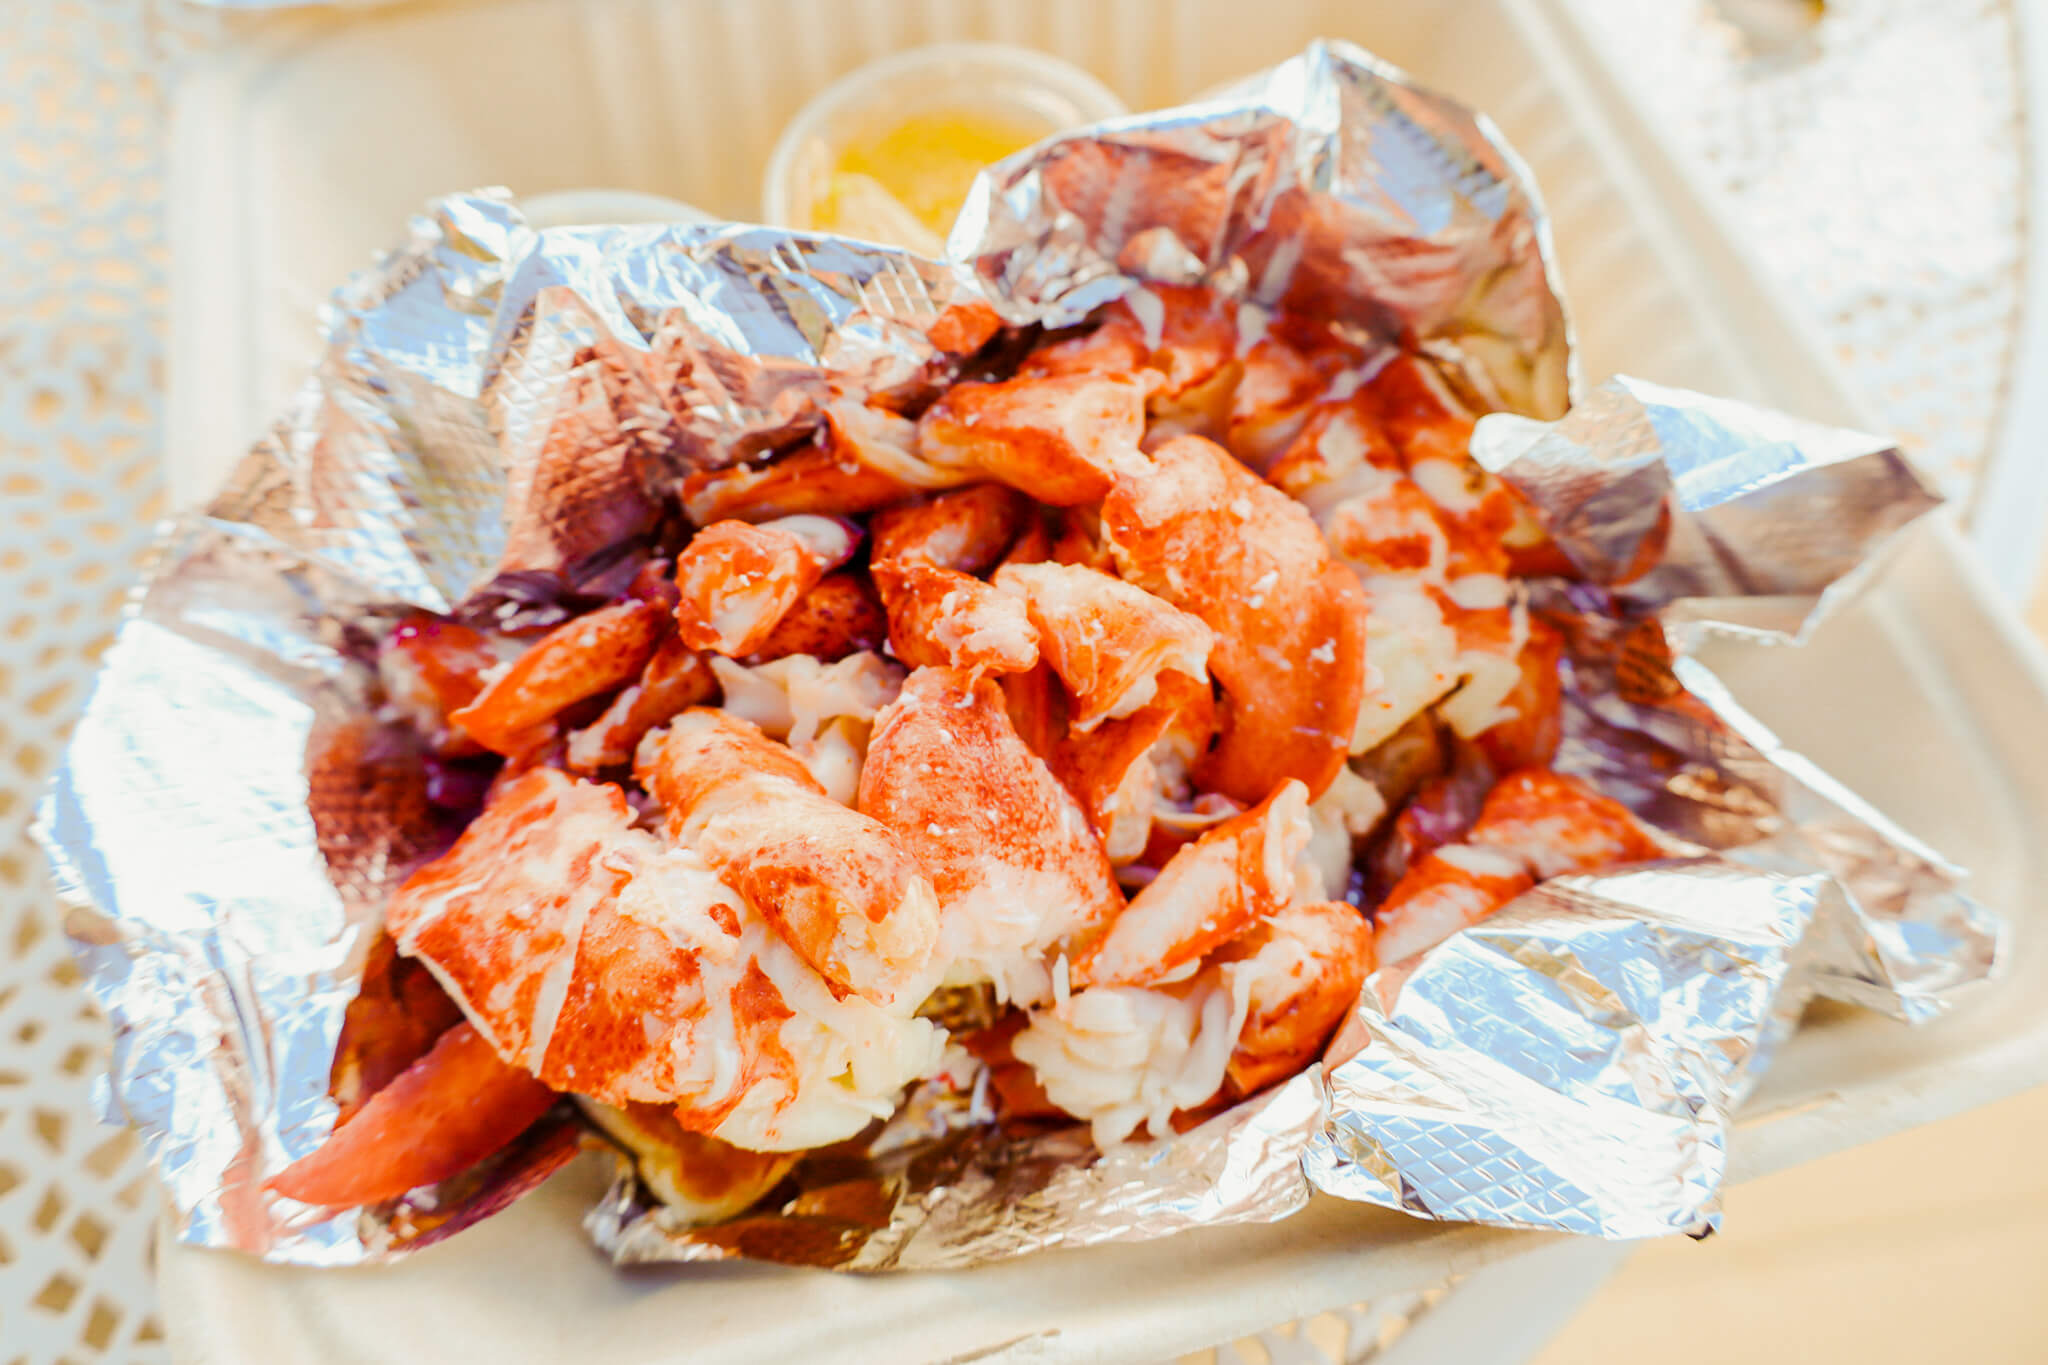 A pile of buttery lobster.